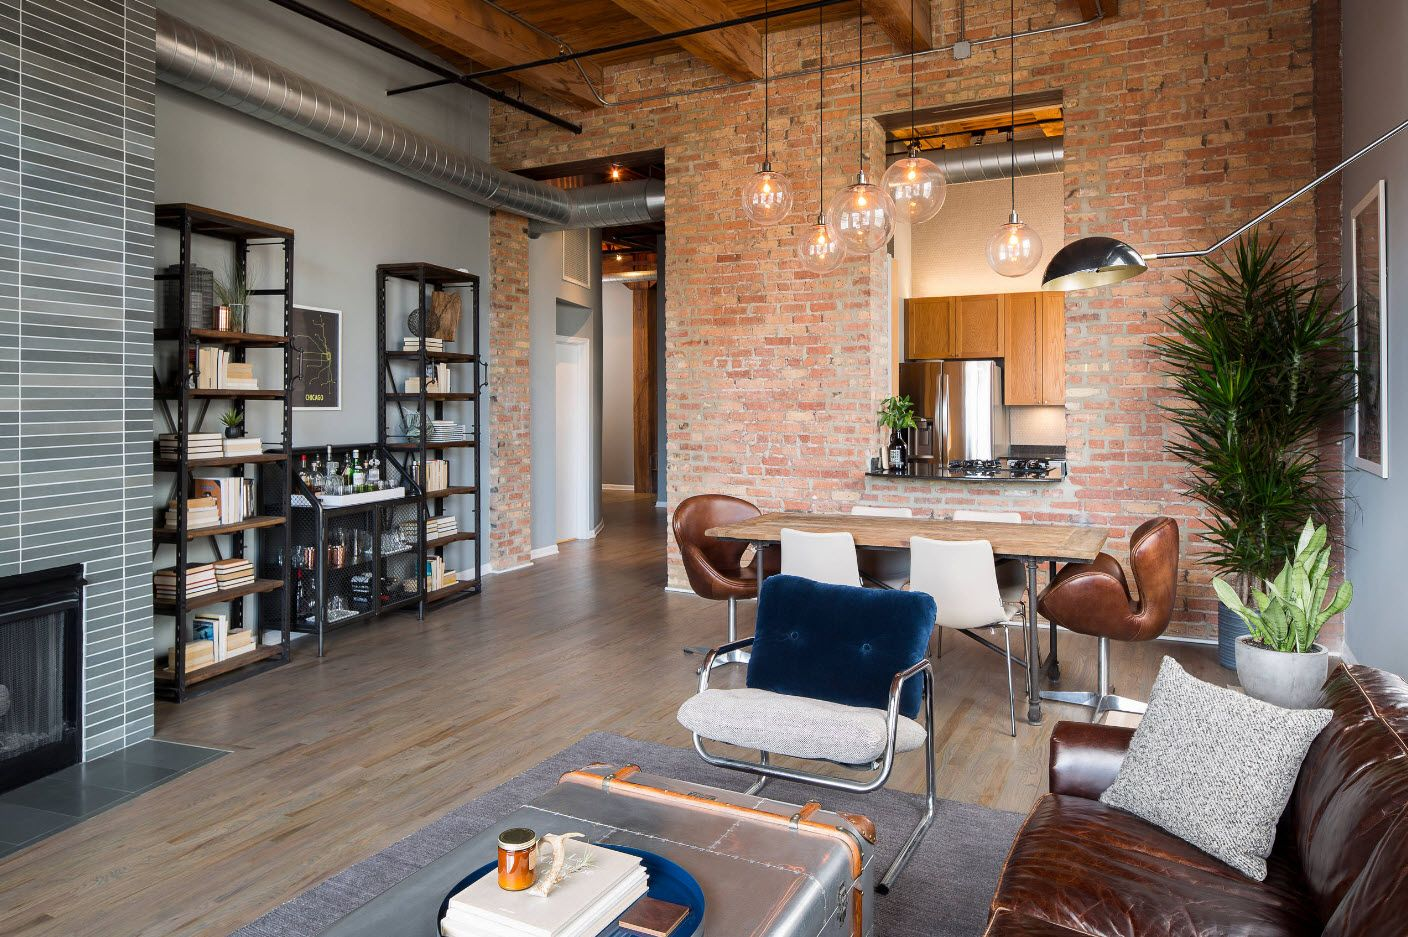 Brightly expressed loft style with suspended lamps and brickwork